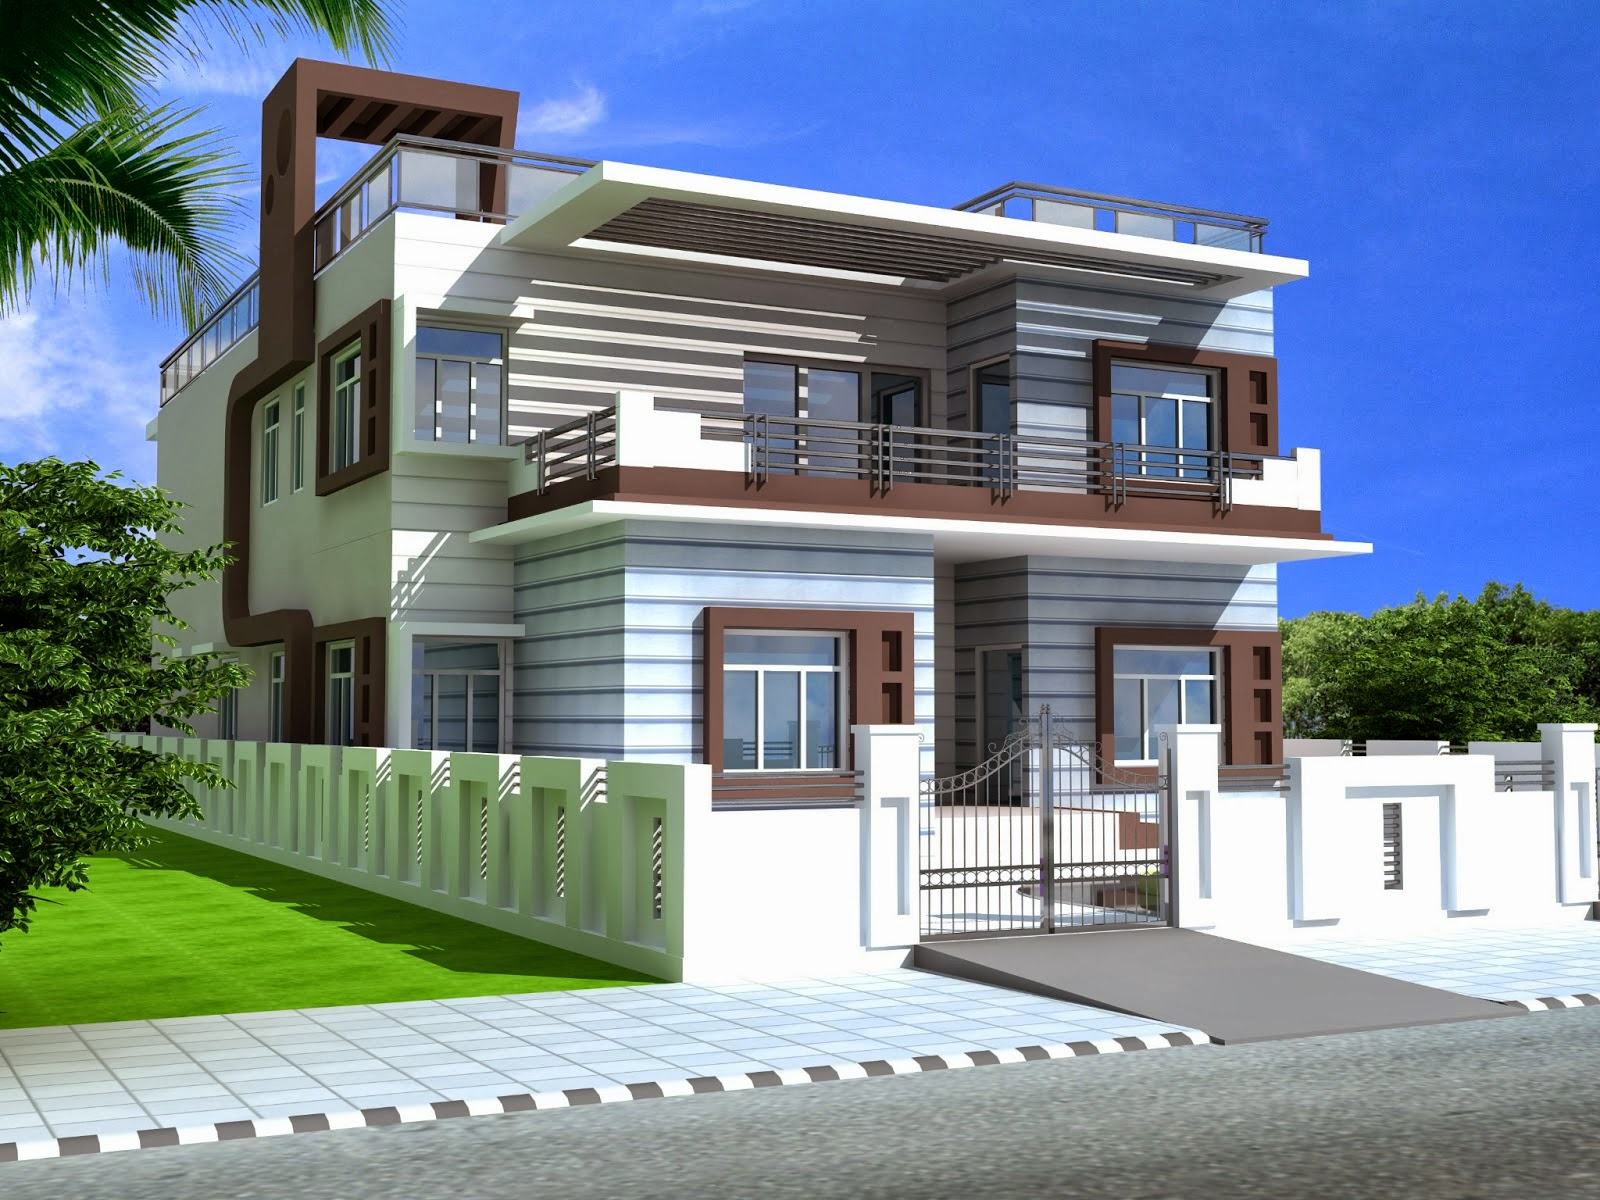 Foundation dezin decor duplex homes 3ds max work for Complete interior design of a house